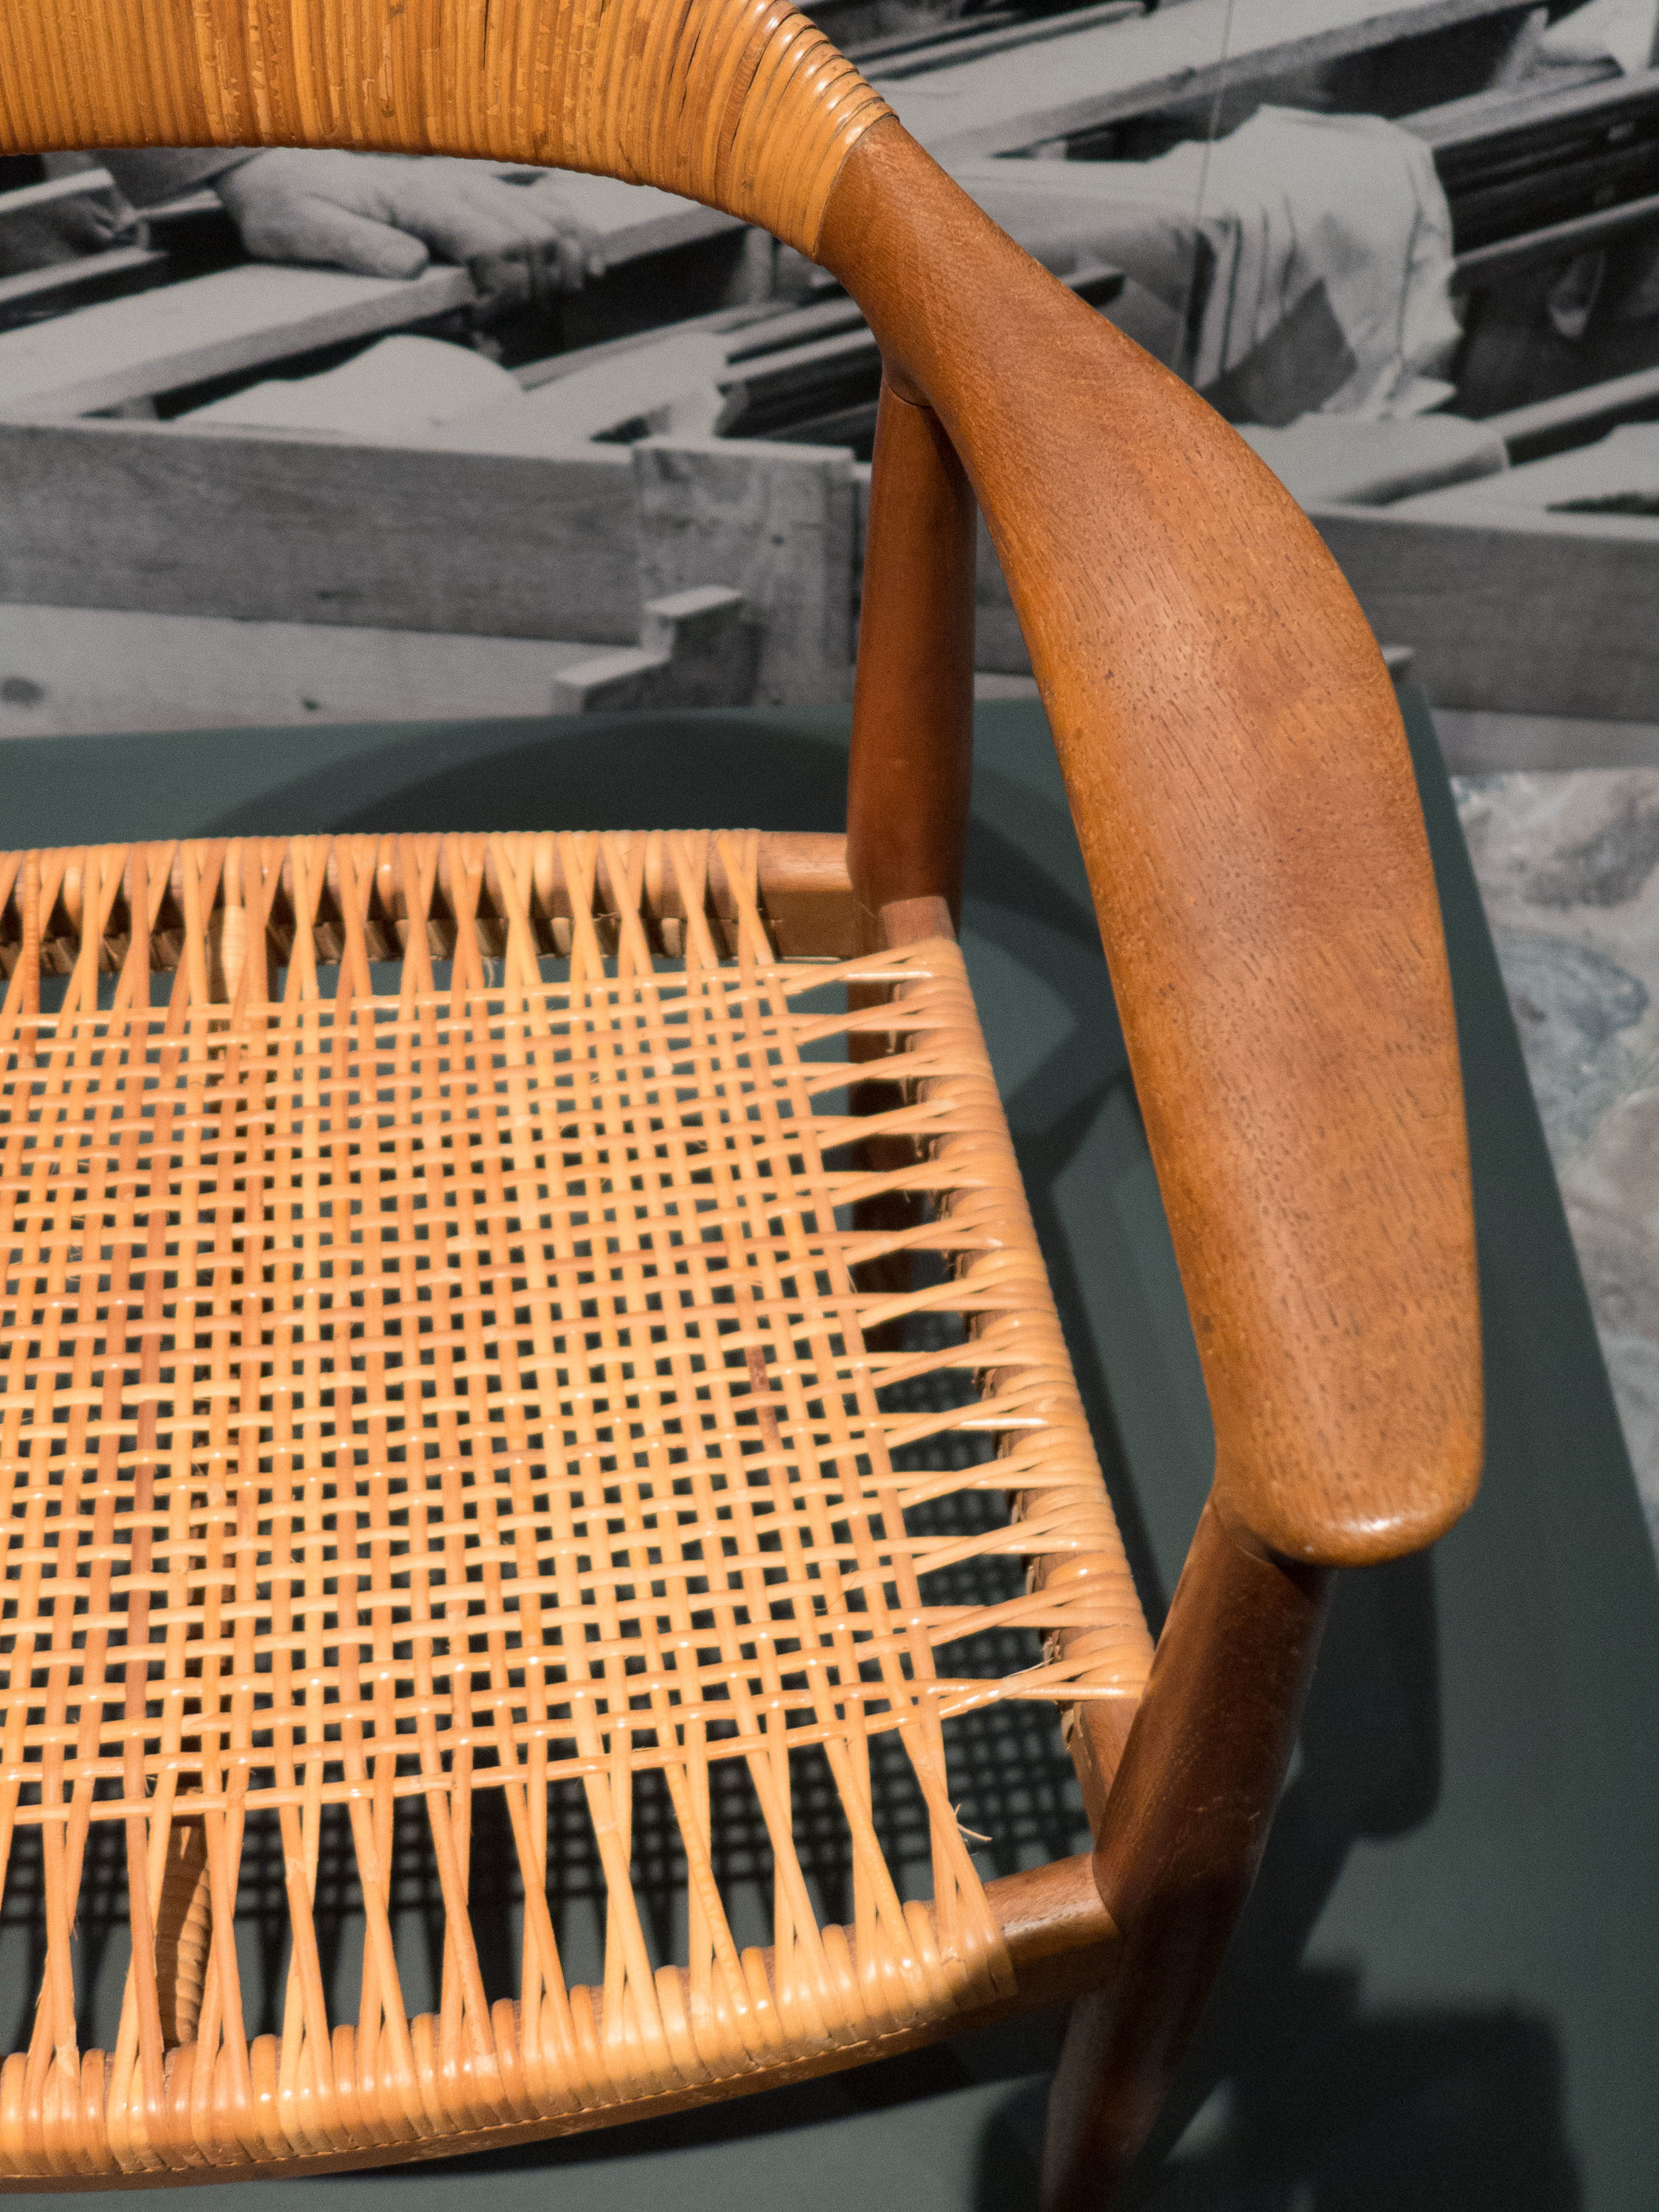 how to cane a chair swing mitre 10 design classic the by hans wegner 1949 danish review back rest itself is deep set as strong vertical but gently curved in plan provide broad band of lumber support arm pieces